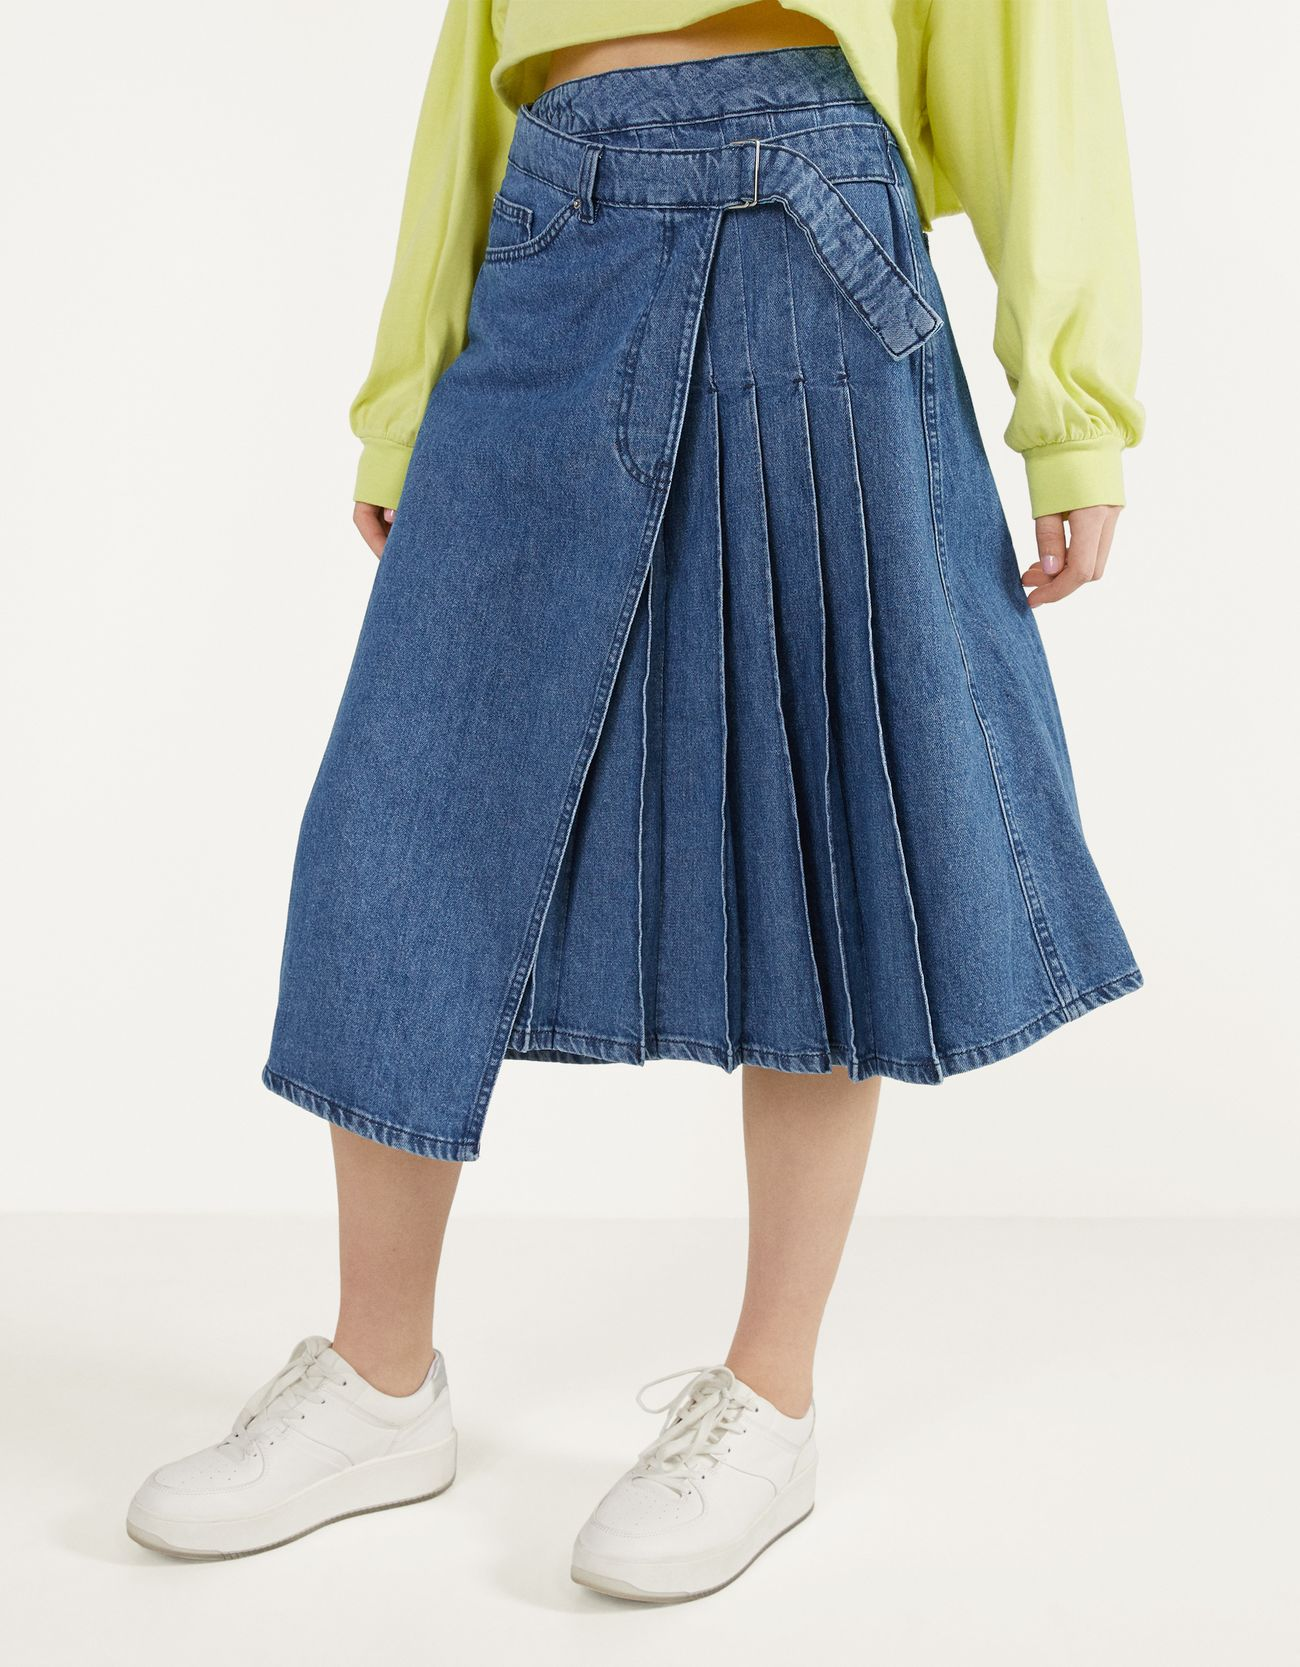 Asymmetric pleated denim skirt